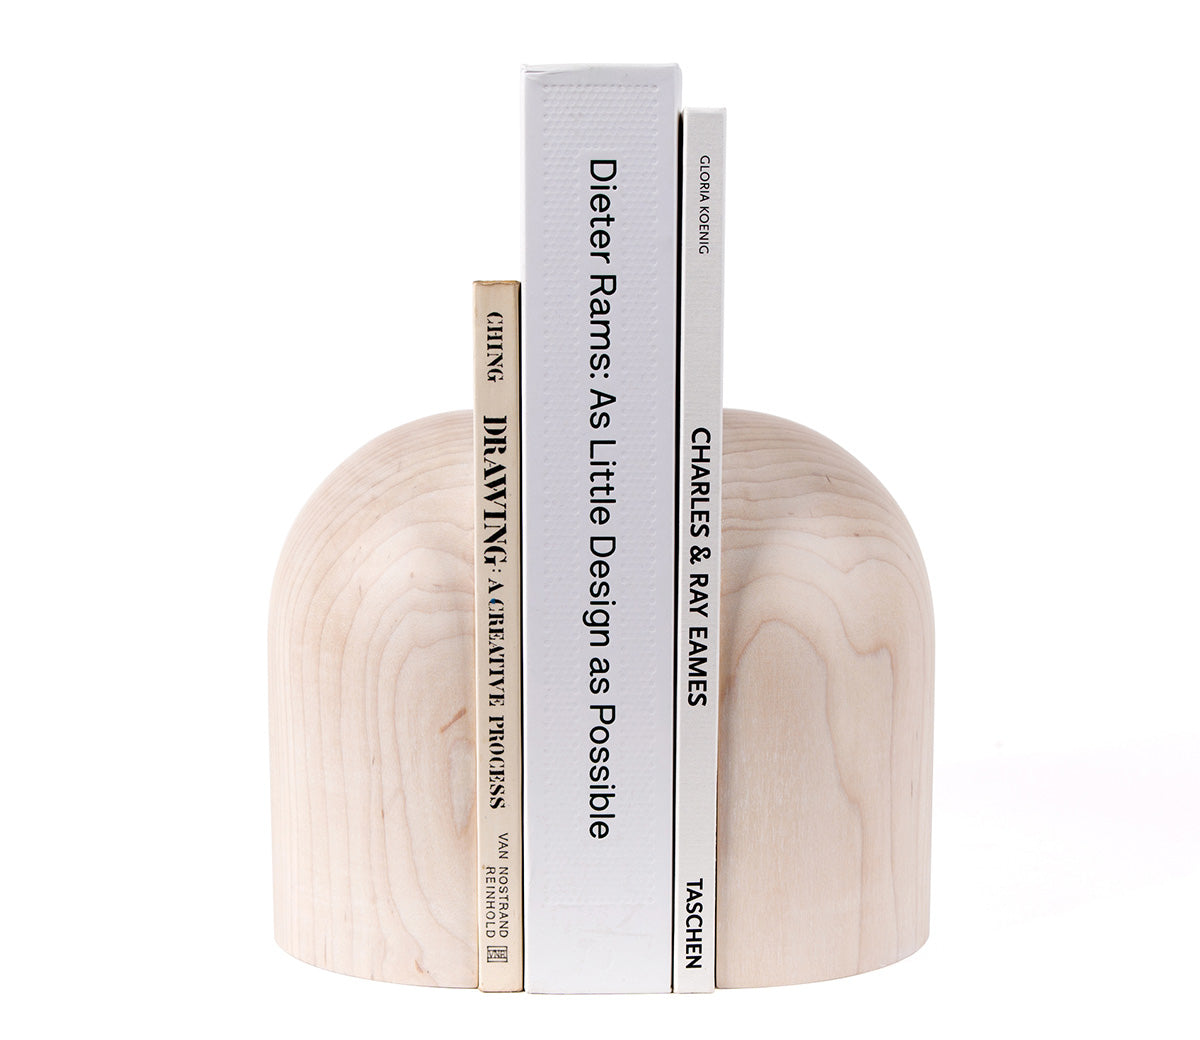 Dome Bookends